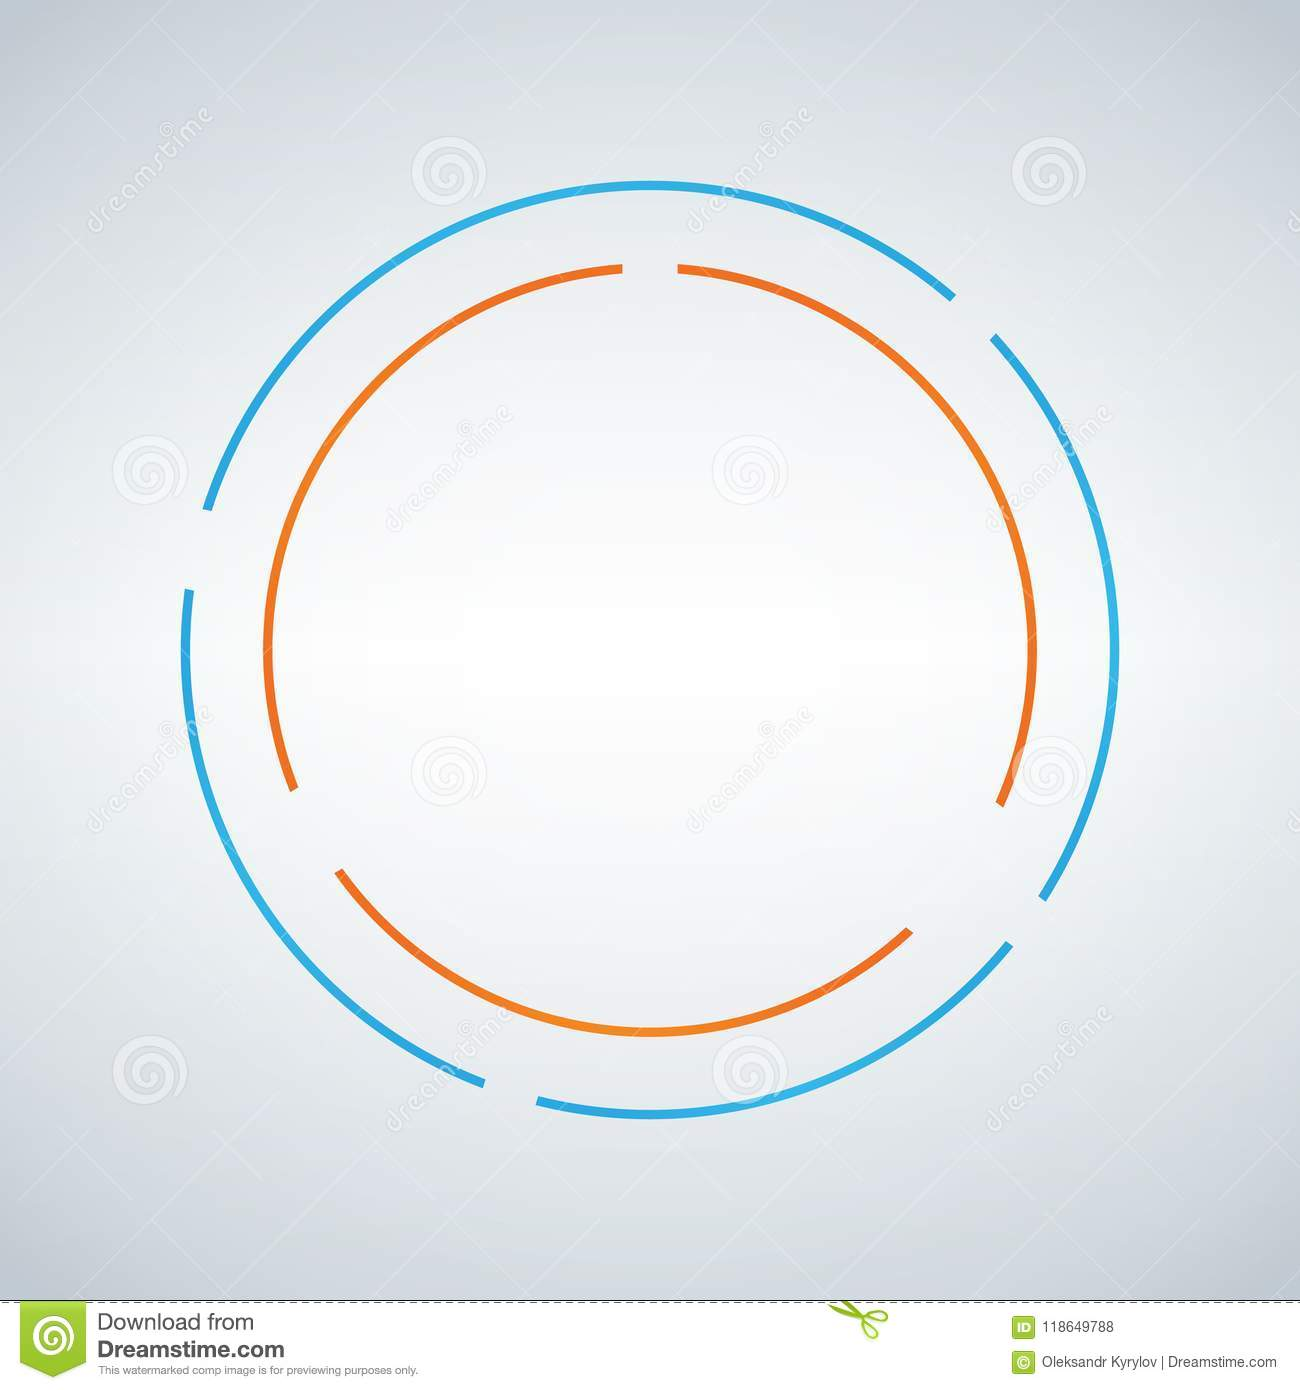 Download Two Circe Abstract Vector Design Double Circle Shape Emblem Identity Icon Blue And